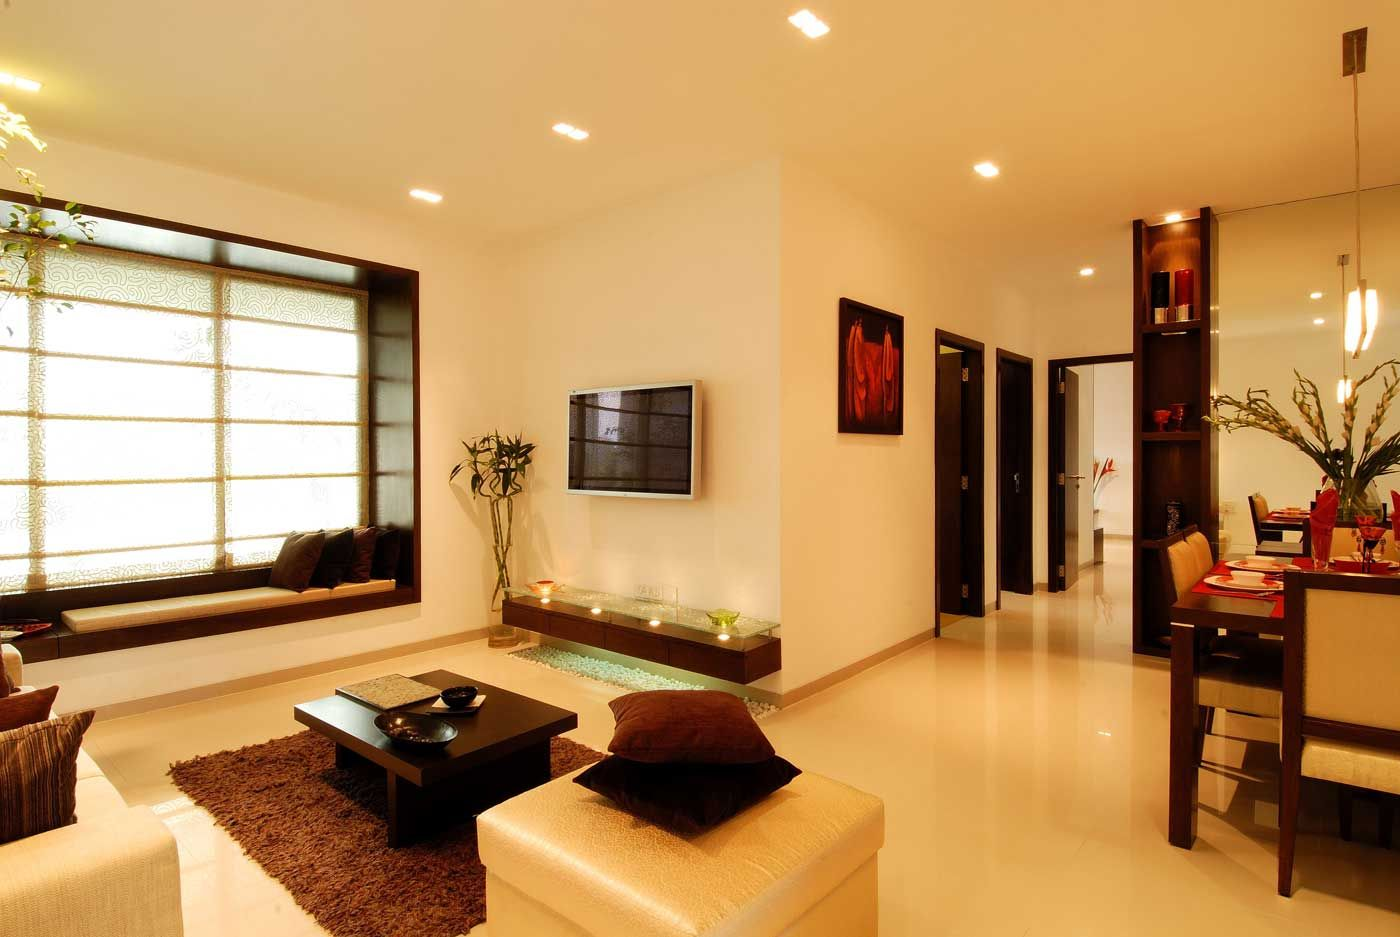 Properties in andheri flats in andheri east mumbai for 3 bedroom flat interior decoration